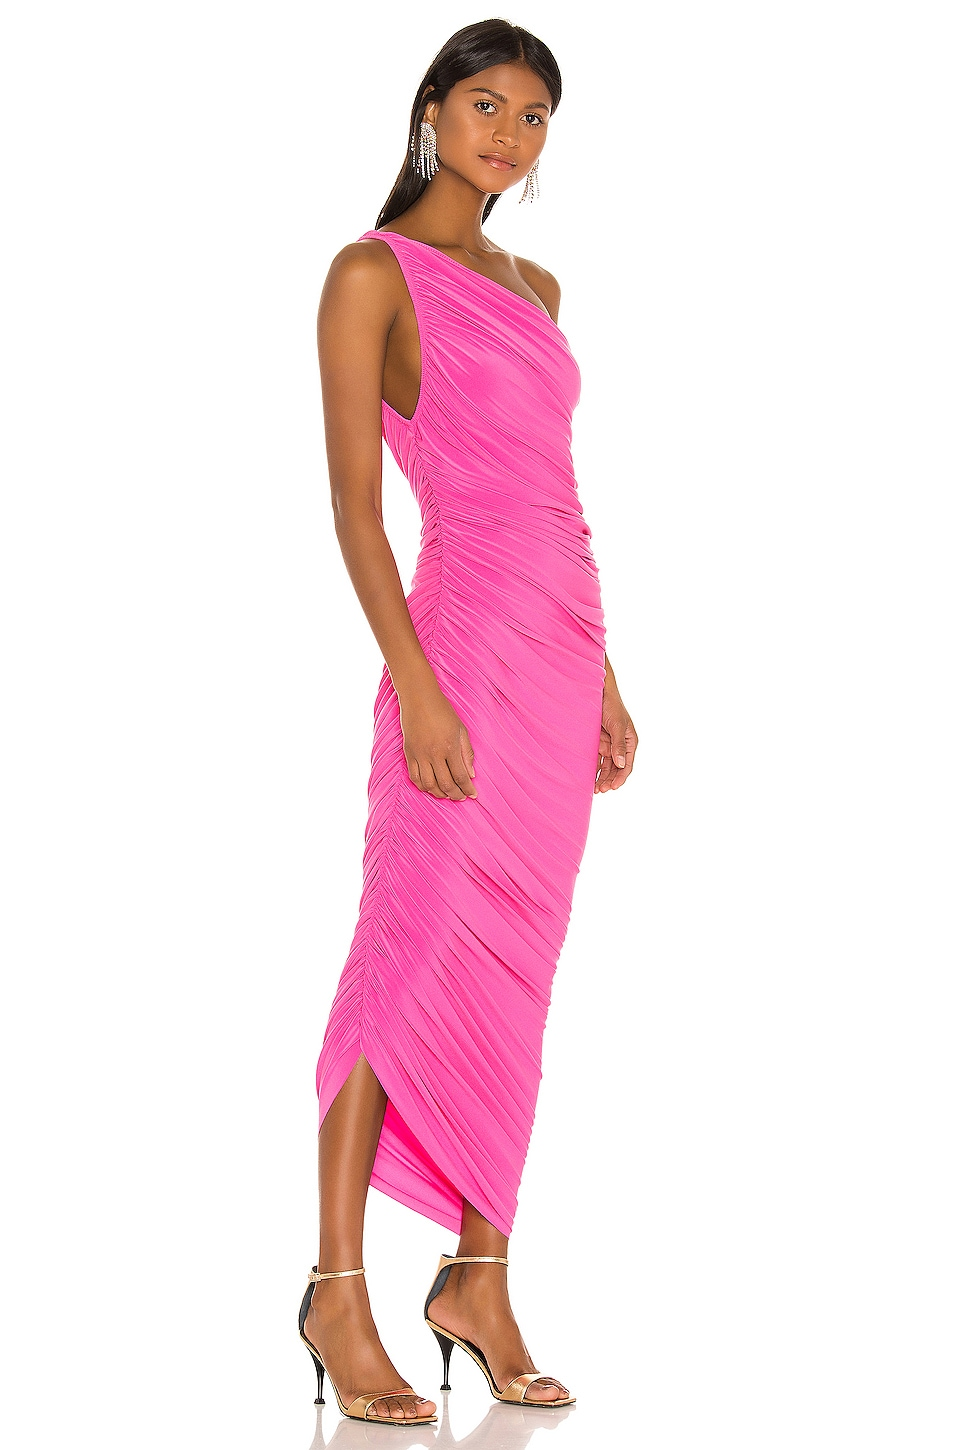 X REVOLVE Diana Gown, view 2, click to view large image.